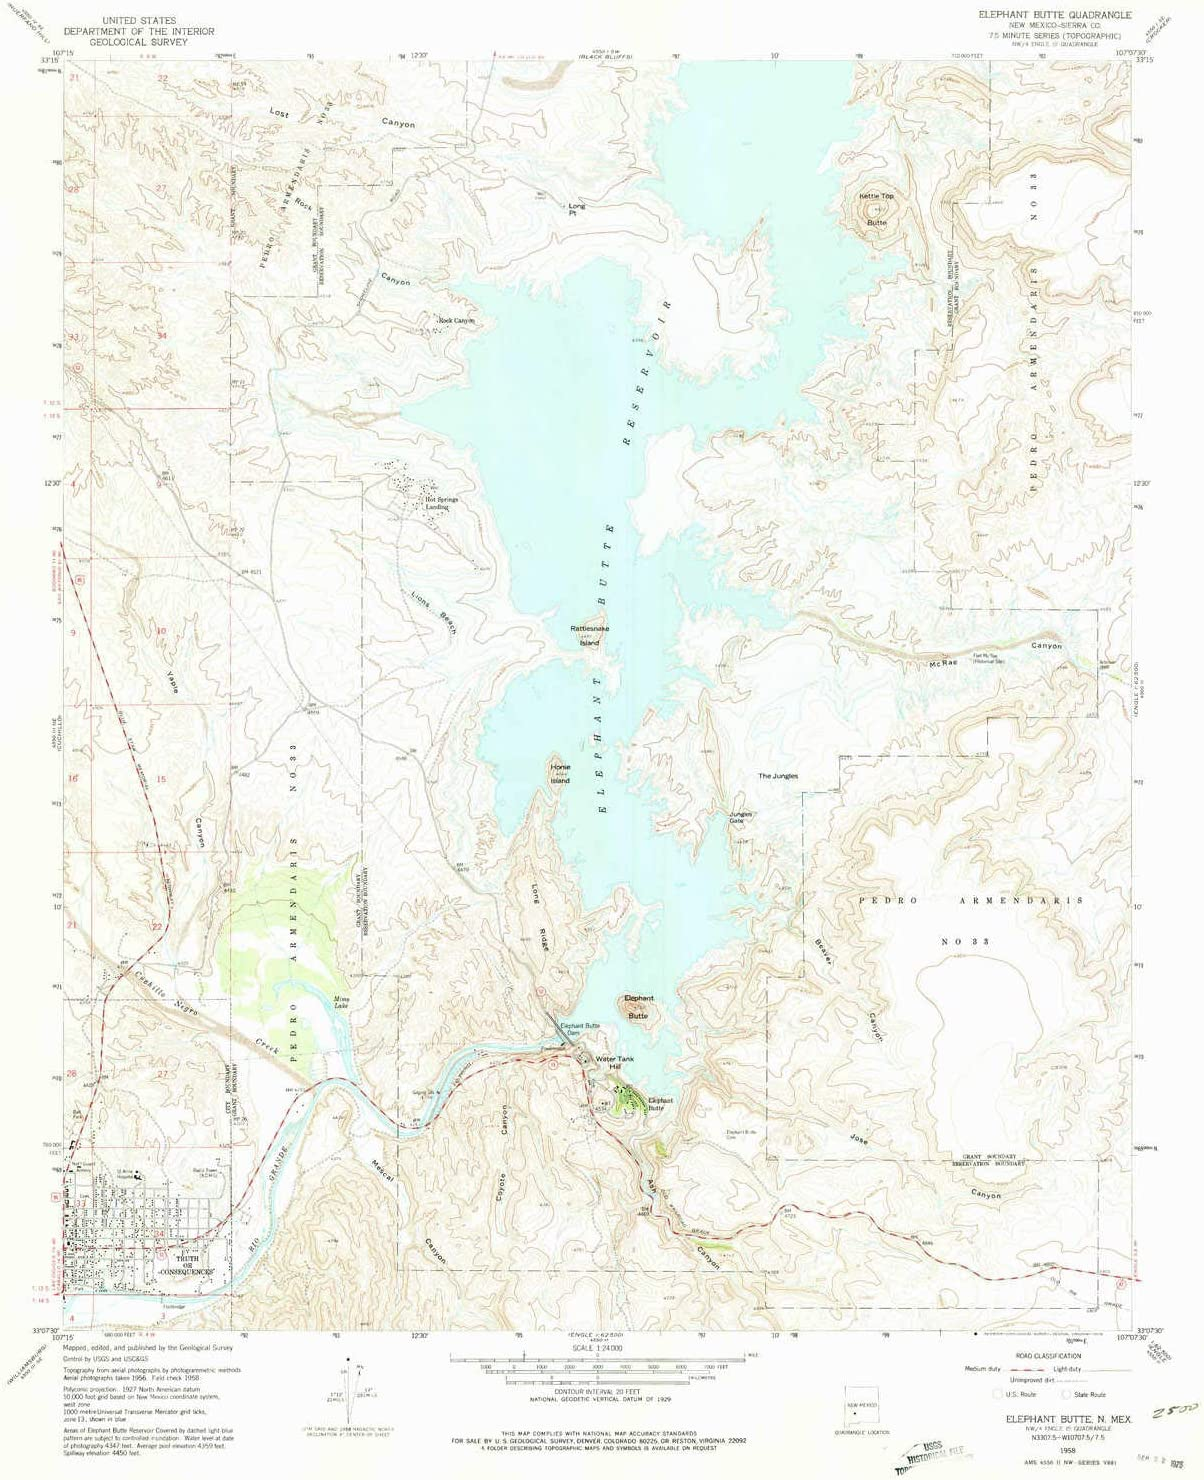 YellowMaps Chicago Mall Elephant Butte NM topo map SALENEW very popular! 7.5 Scale 1:24000 X